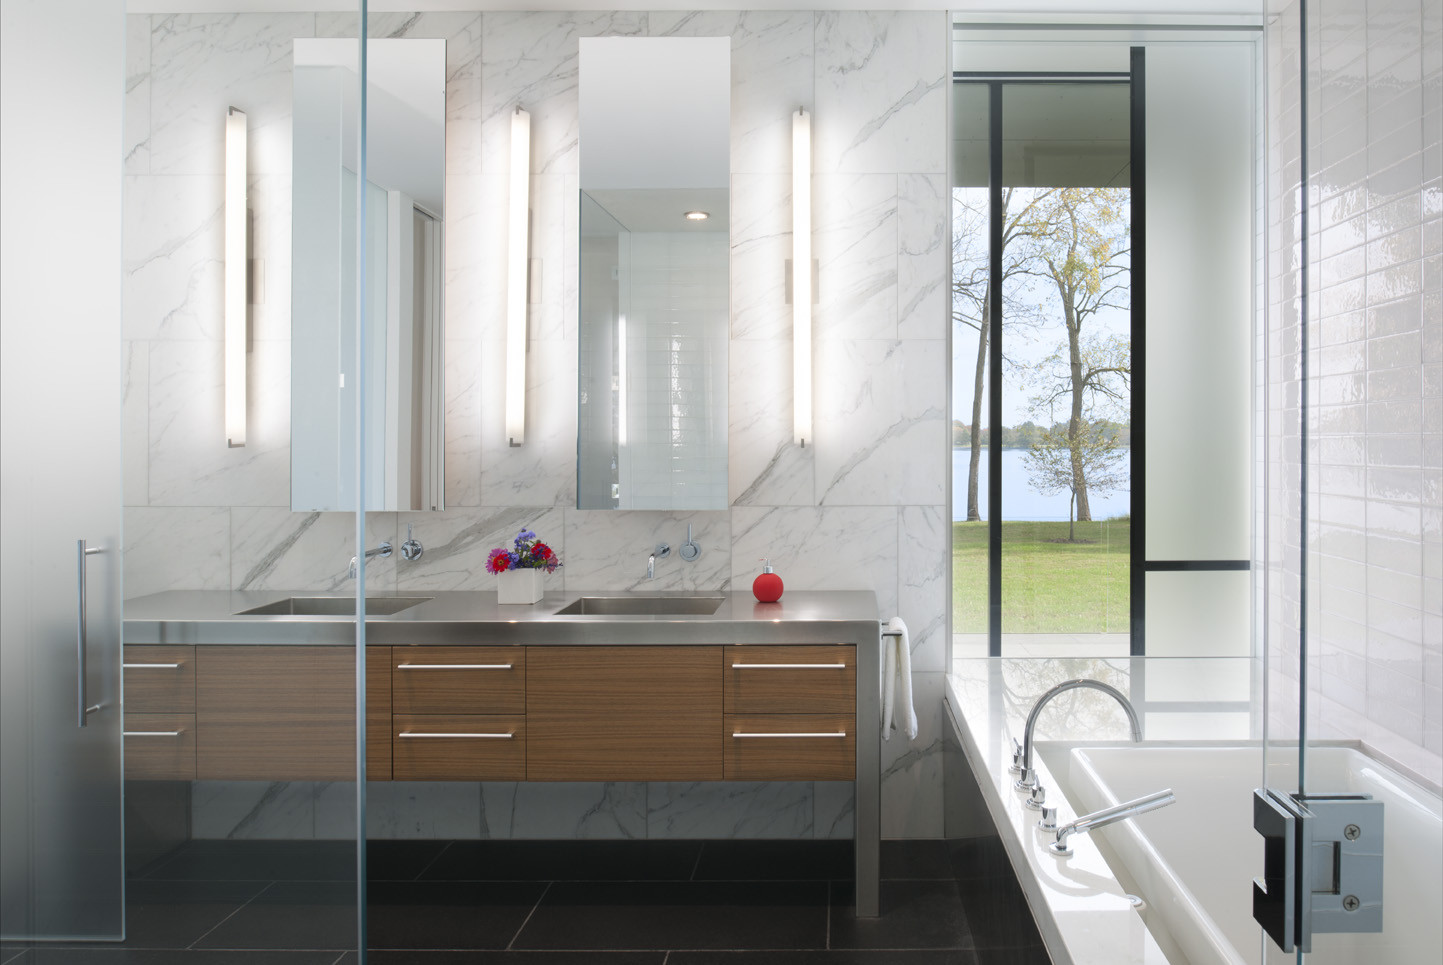 Bathroom Designs Usa residential design inspiration: modern master bathrooms - studio